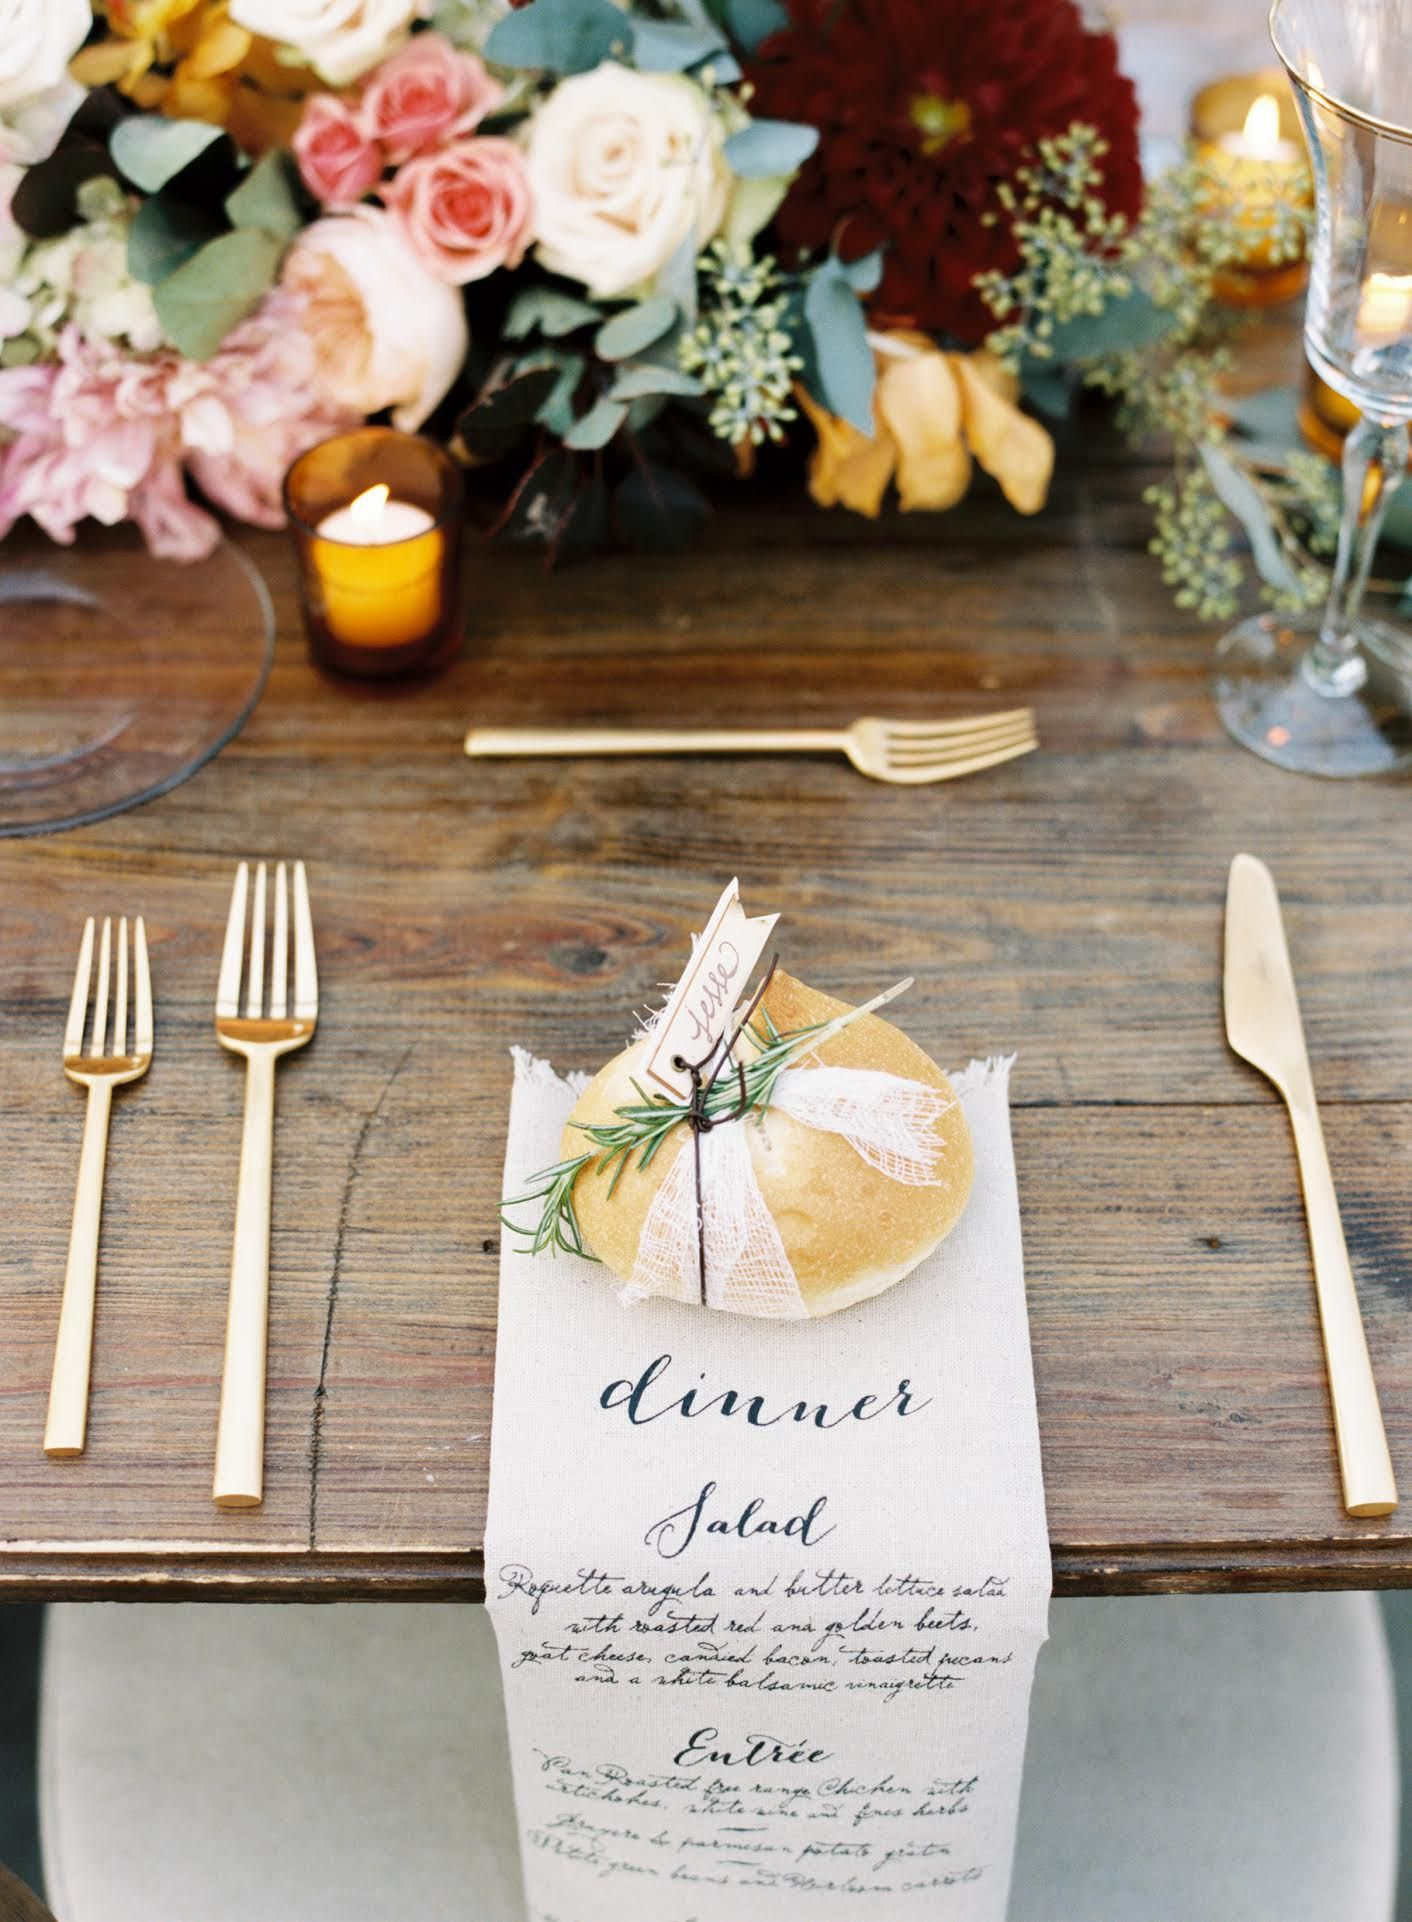 Tablescape, Bloomsbury Farm, Flowers by: Big Events Wedding, Photo: Austin Gros Wedding Photography - Tennessee Wedding http://caratsandcake.com/adairandkane